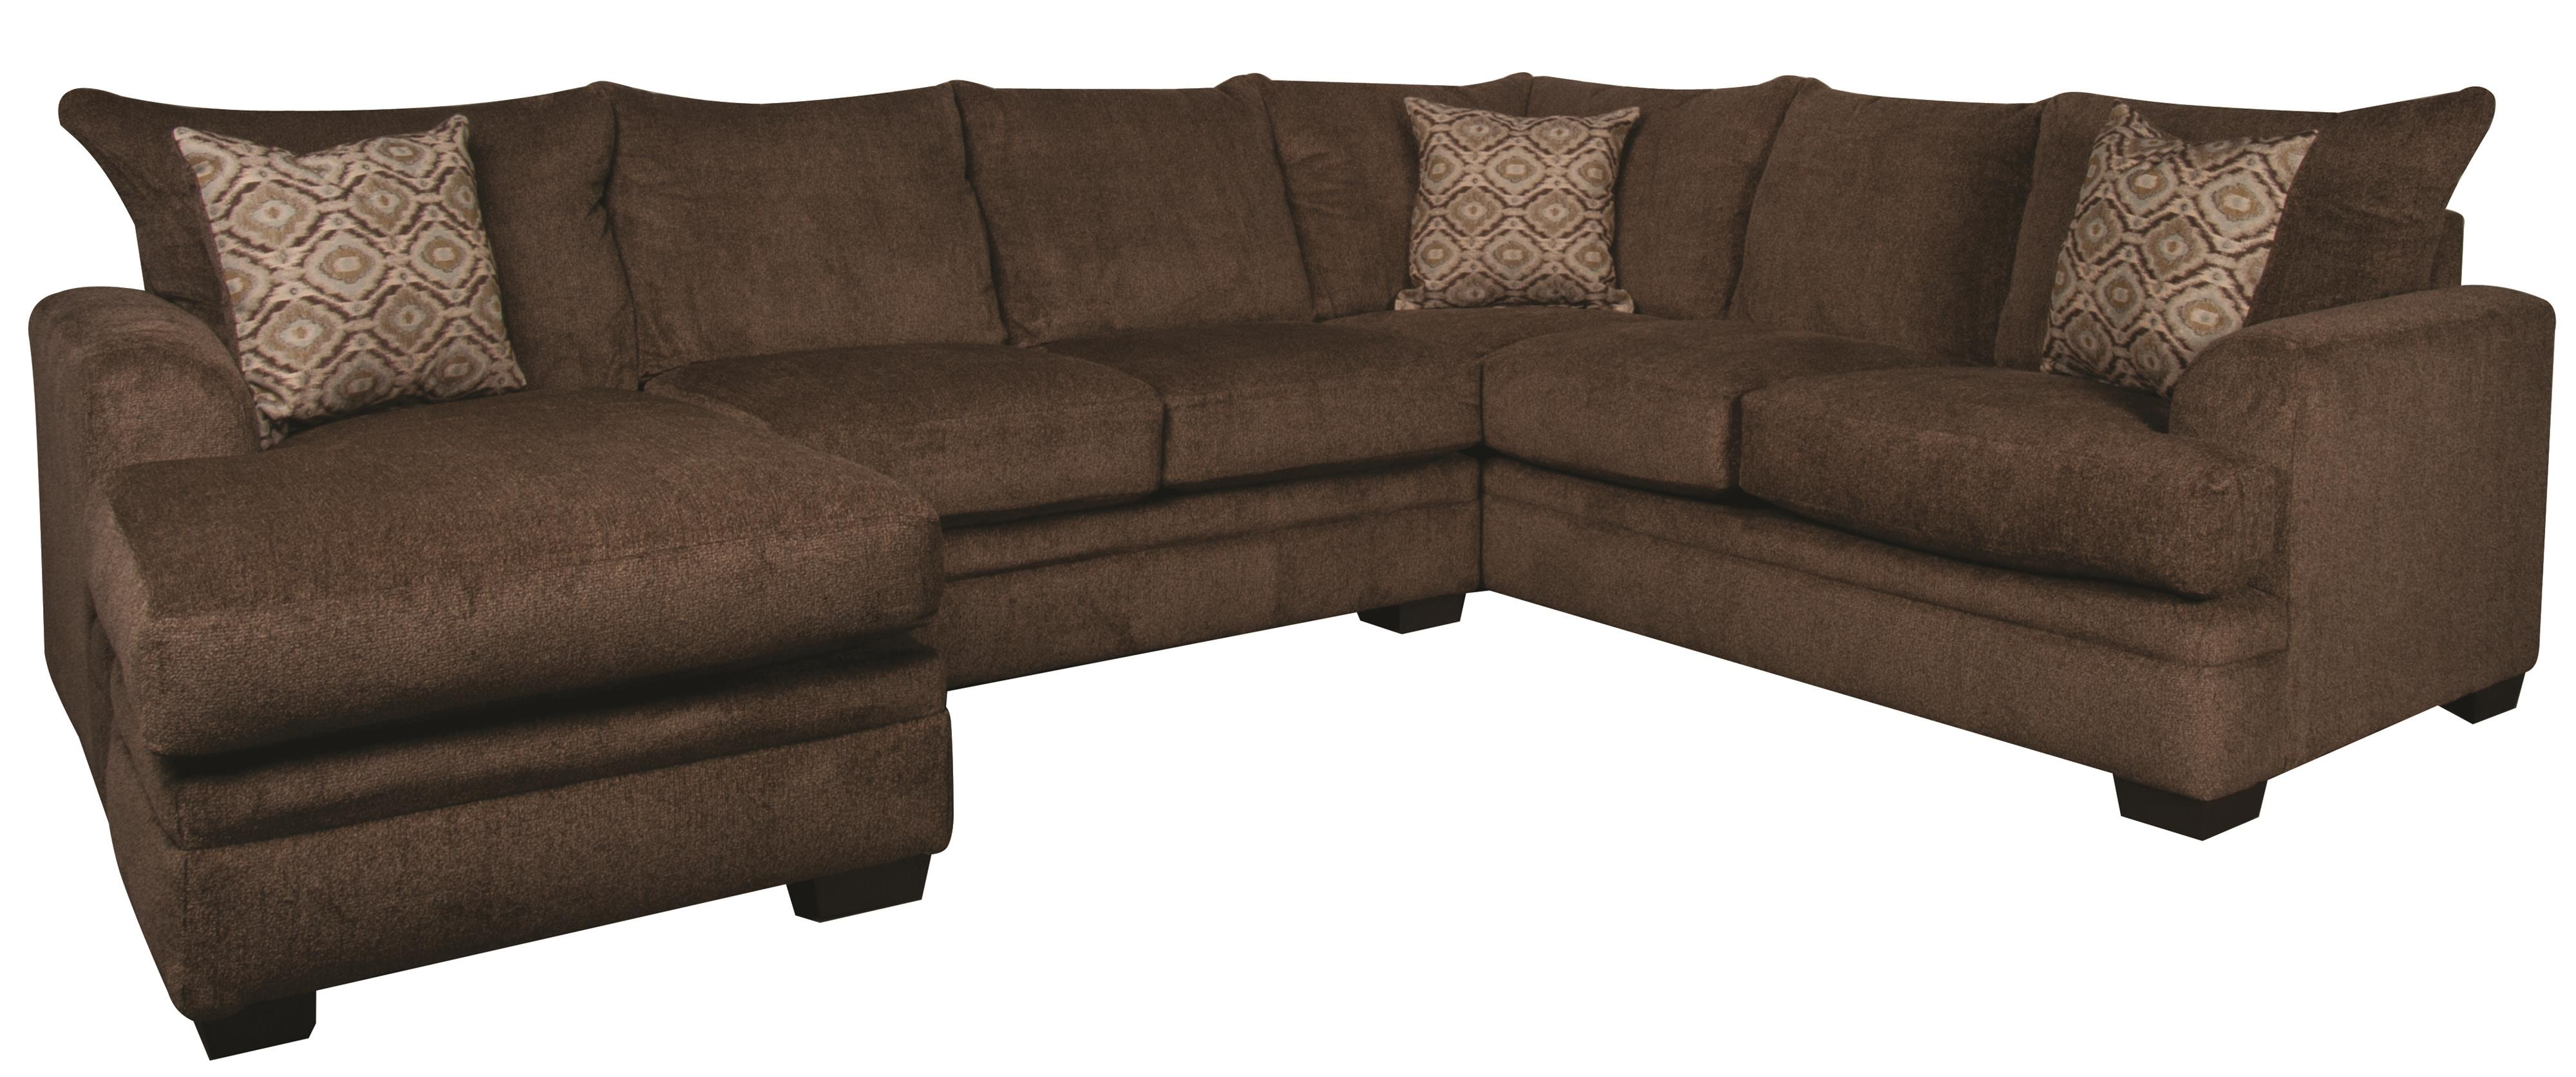 Walter Walter Sectional with Accent Pillows by Peak Living at Morris Home